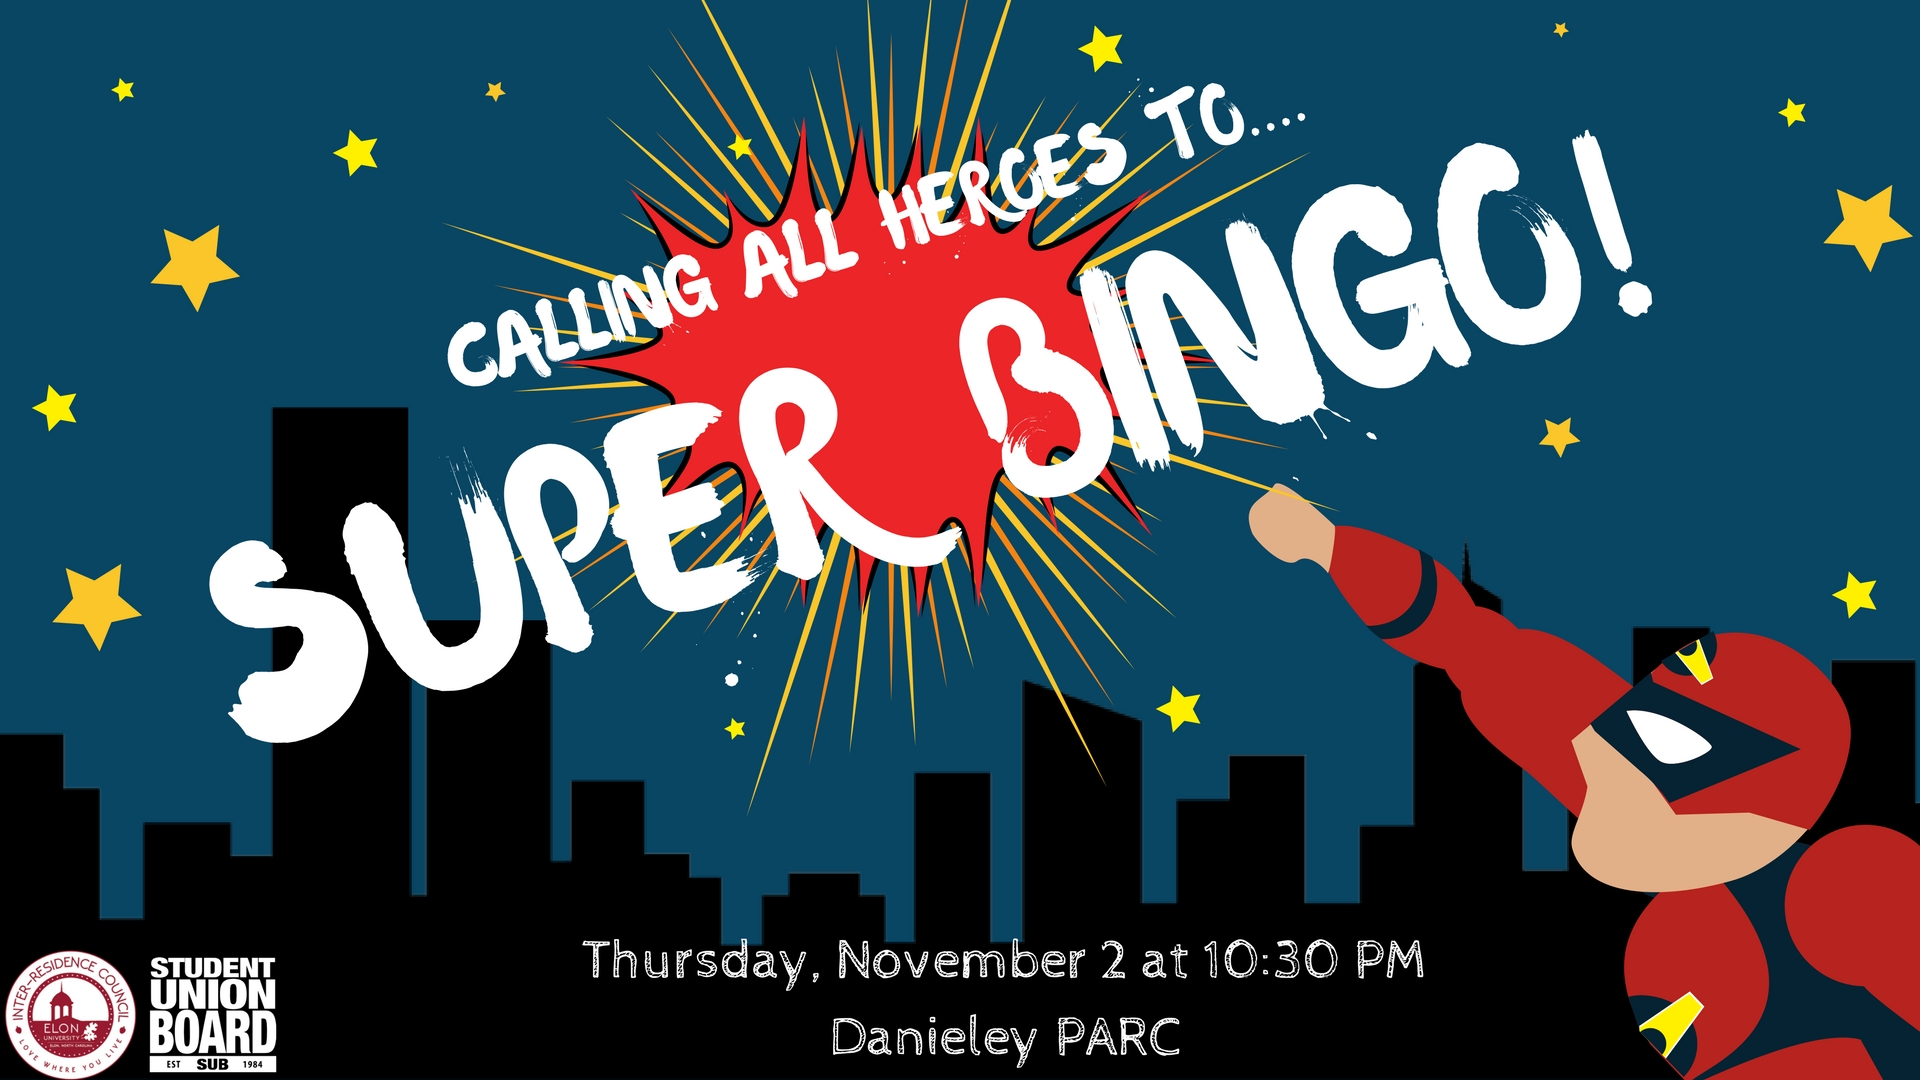 Fly by to Super Bingo at 10:30pm in the Danieley PARC!